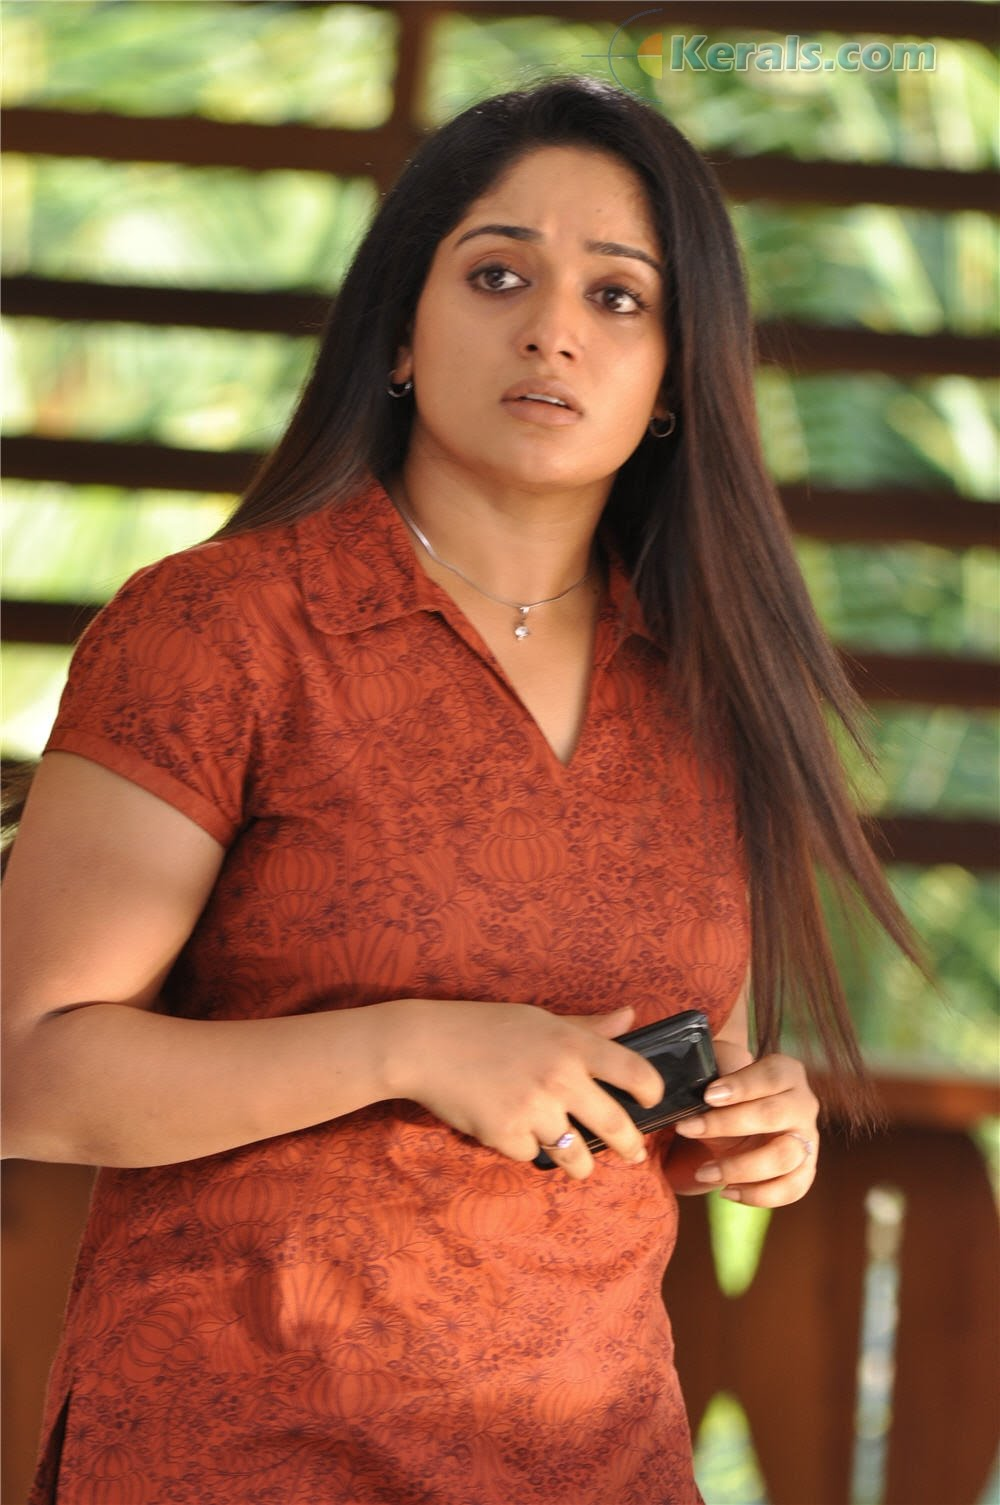 Hot South Indian Actress Photos  Movies  Reviews  News -4049